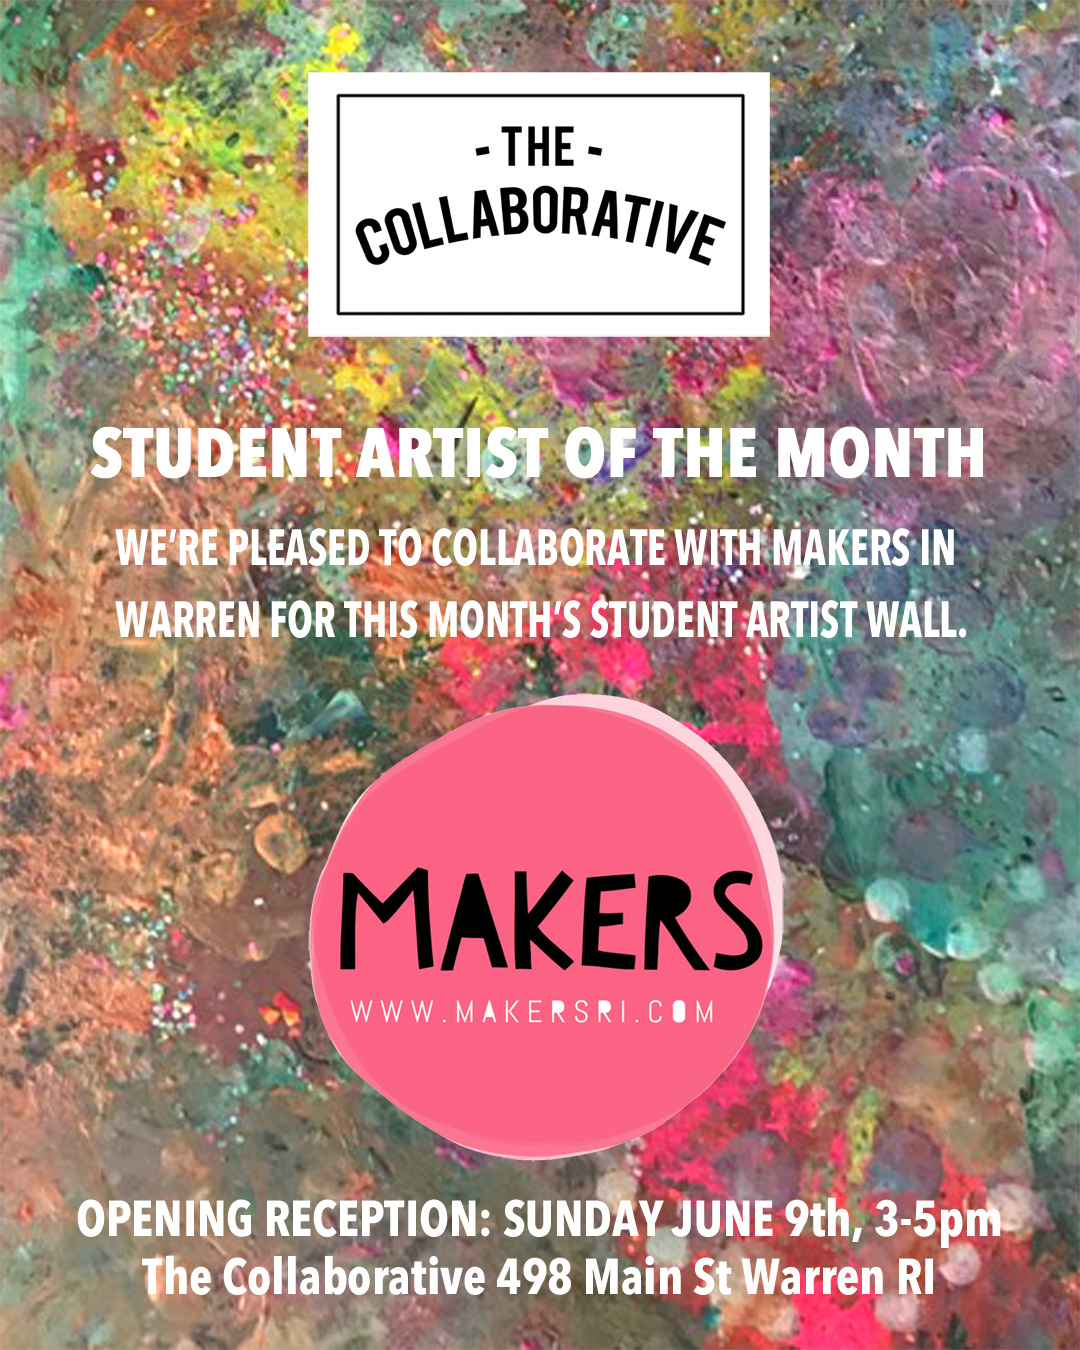 Student-makers-web.jpg